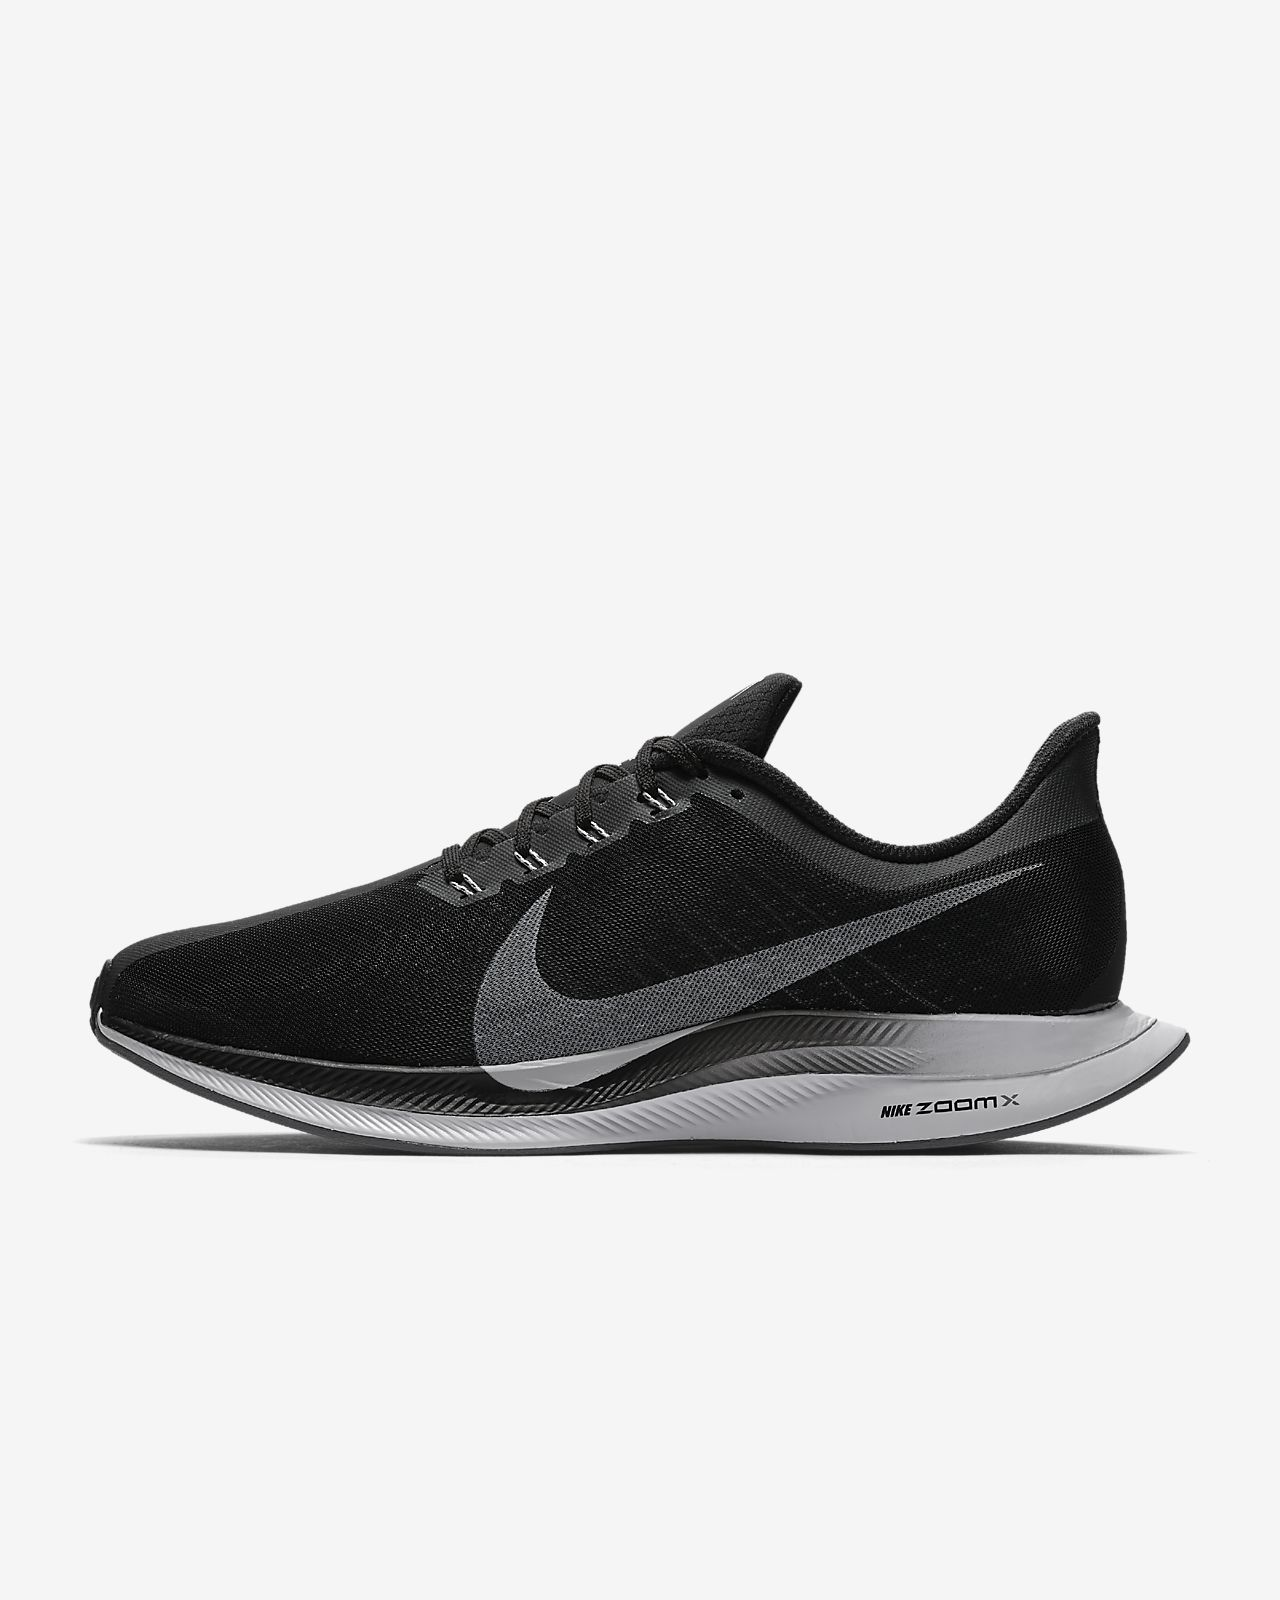 Tomar un baño conjunción Porque  Nike Zoom Pegasus 35 Turbo Men's Running Shoe. Nike AT